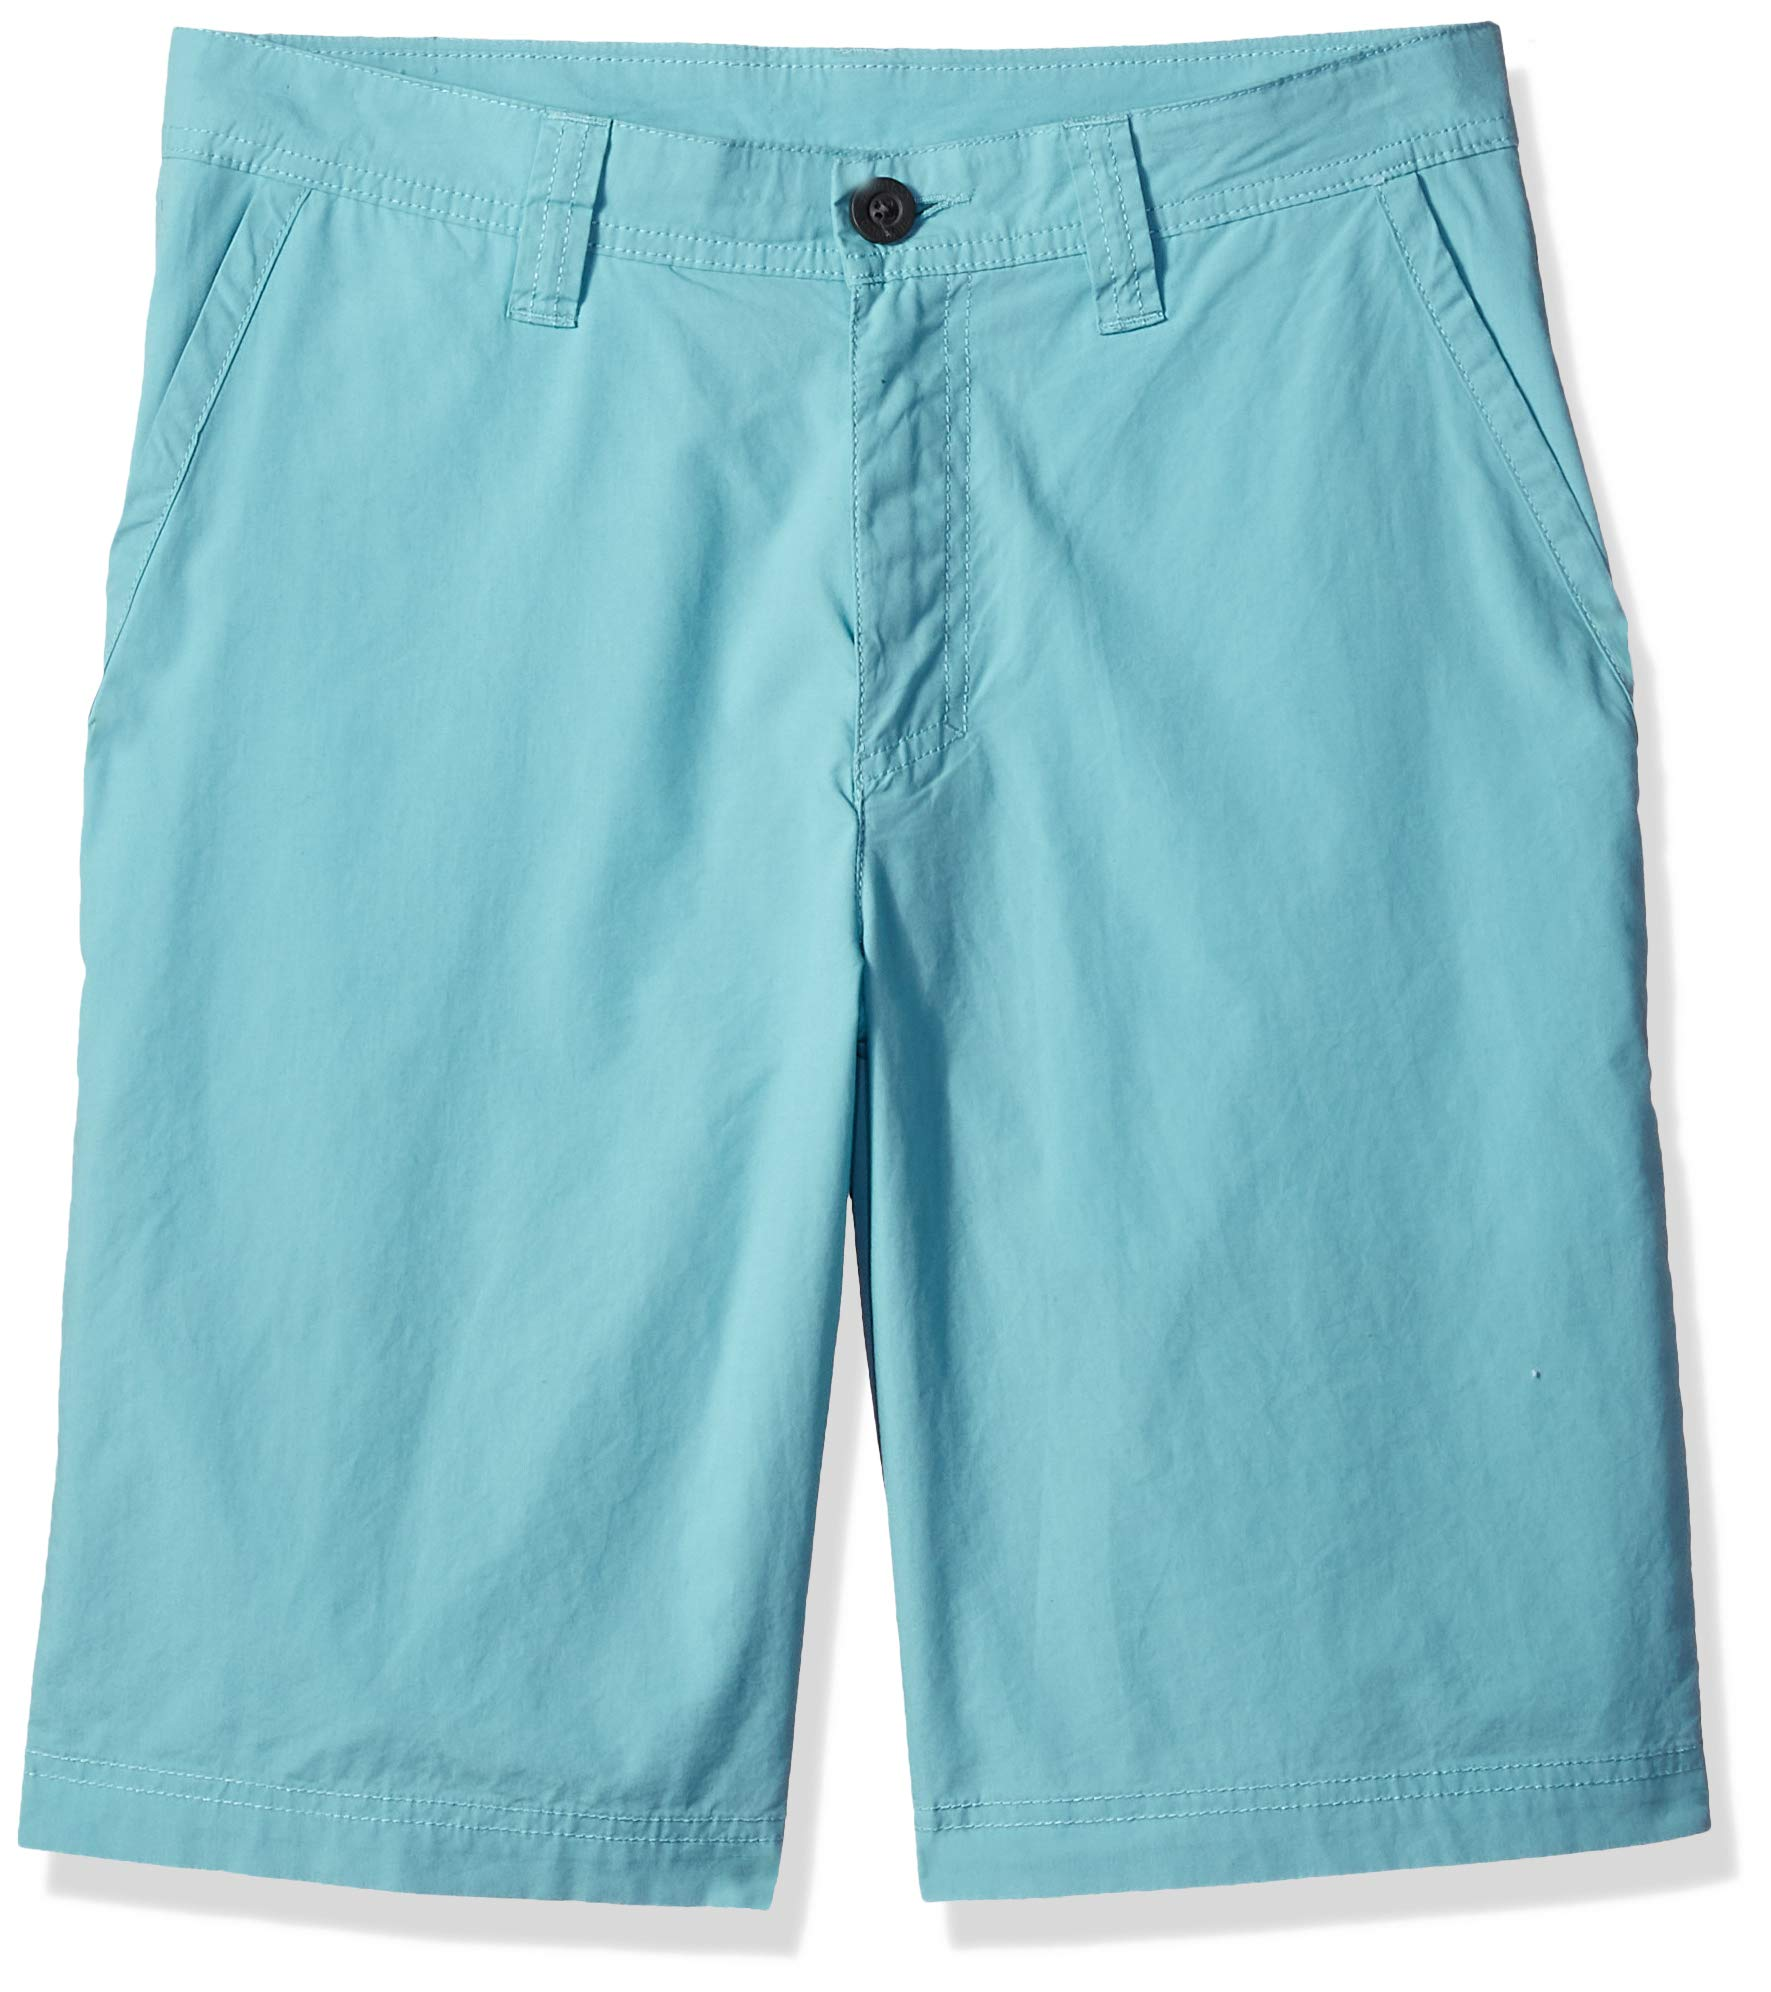 Columbia Big and Tall Men's Washed Out Short, Moxie, 34x10